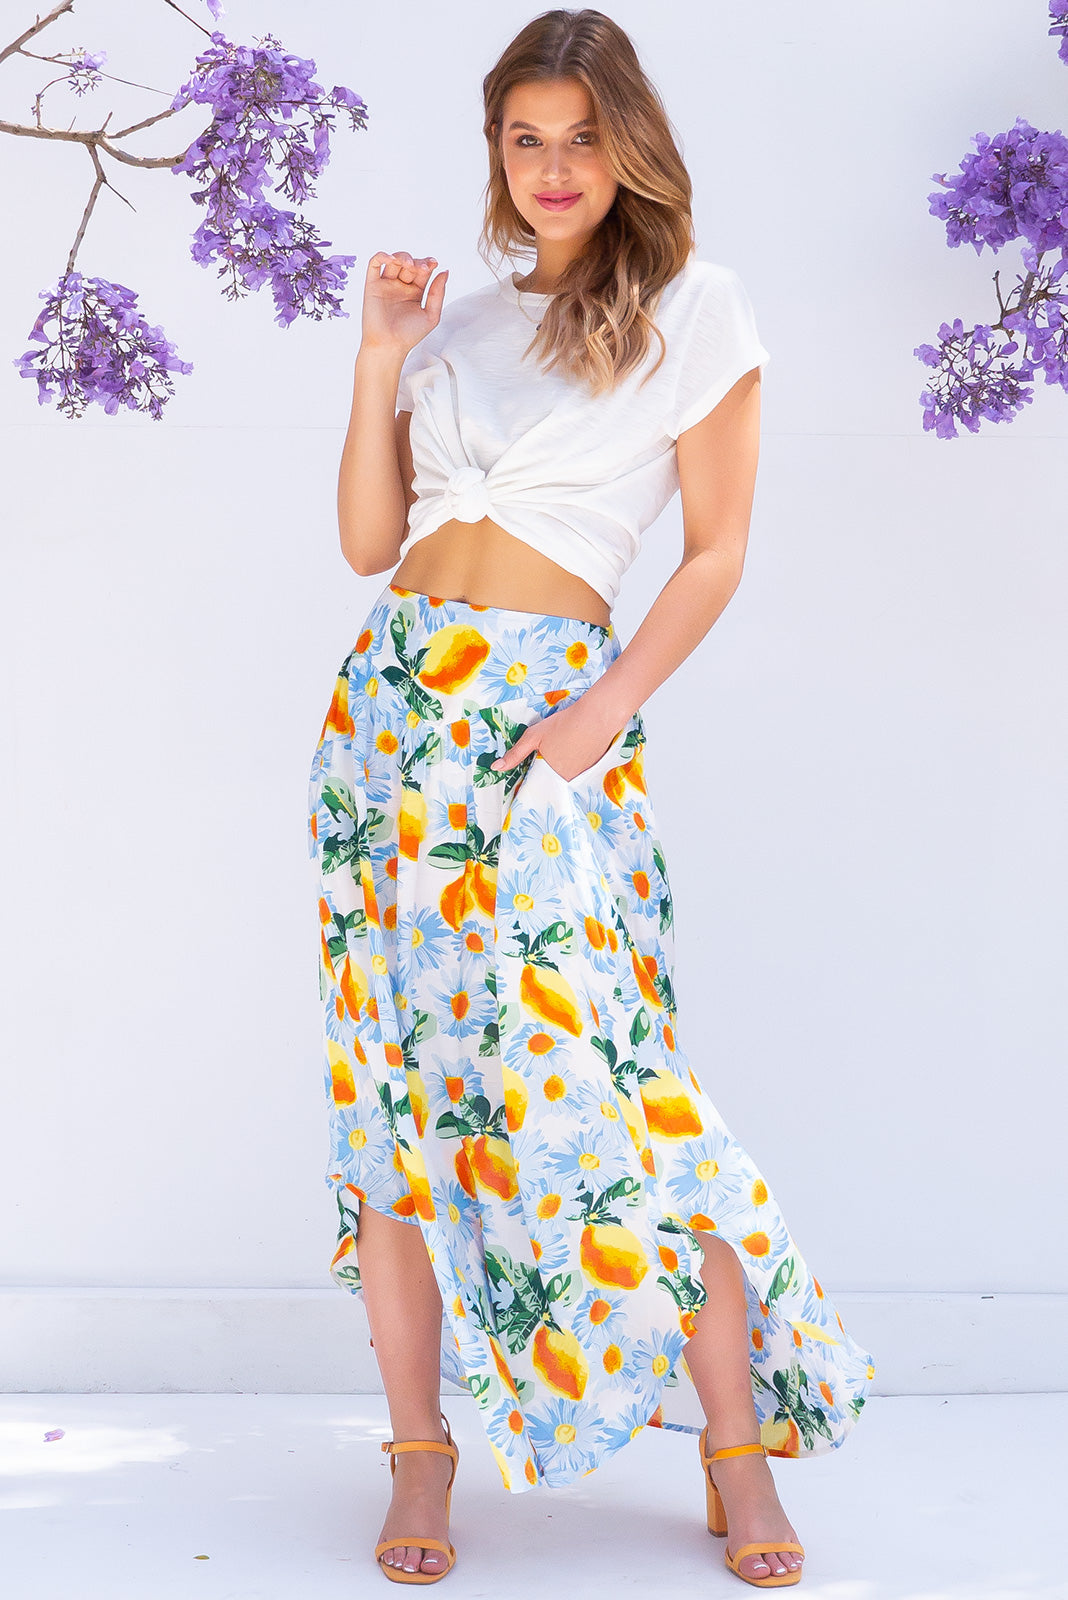 Sails Limoncello Maxi Skirt made from viscose fabric with lemons and daisies print, features flattering waist band and side pockets.